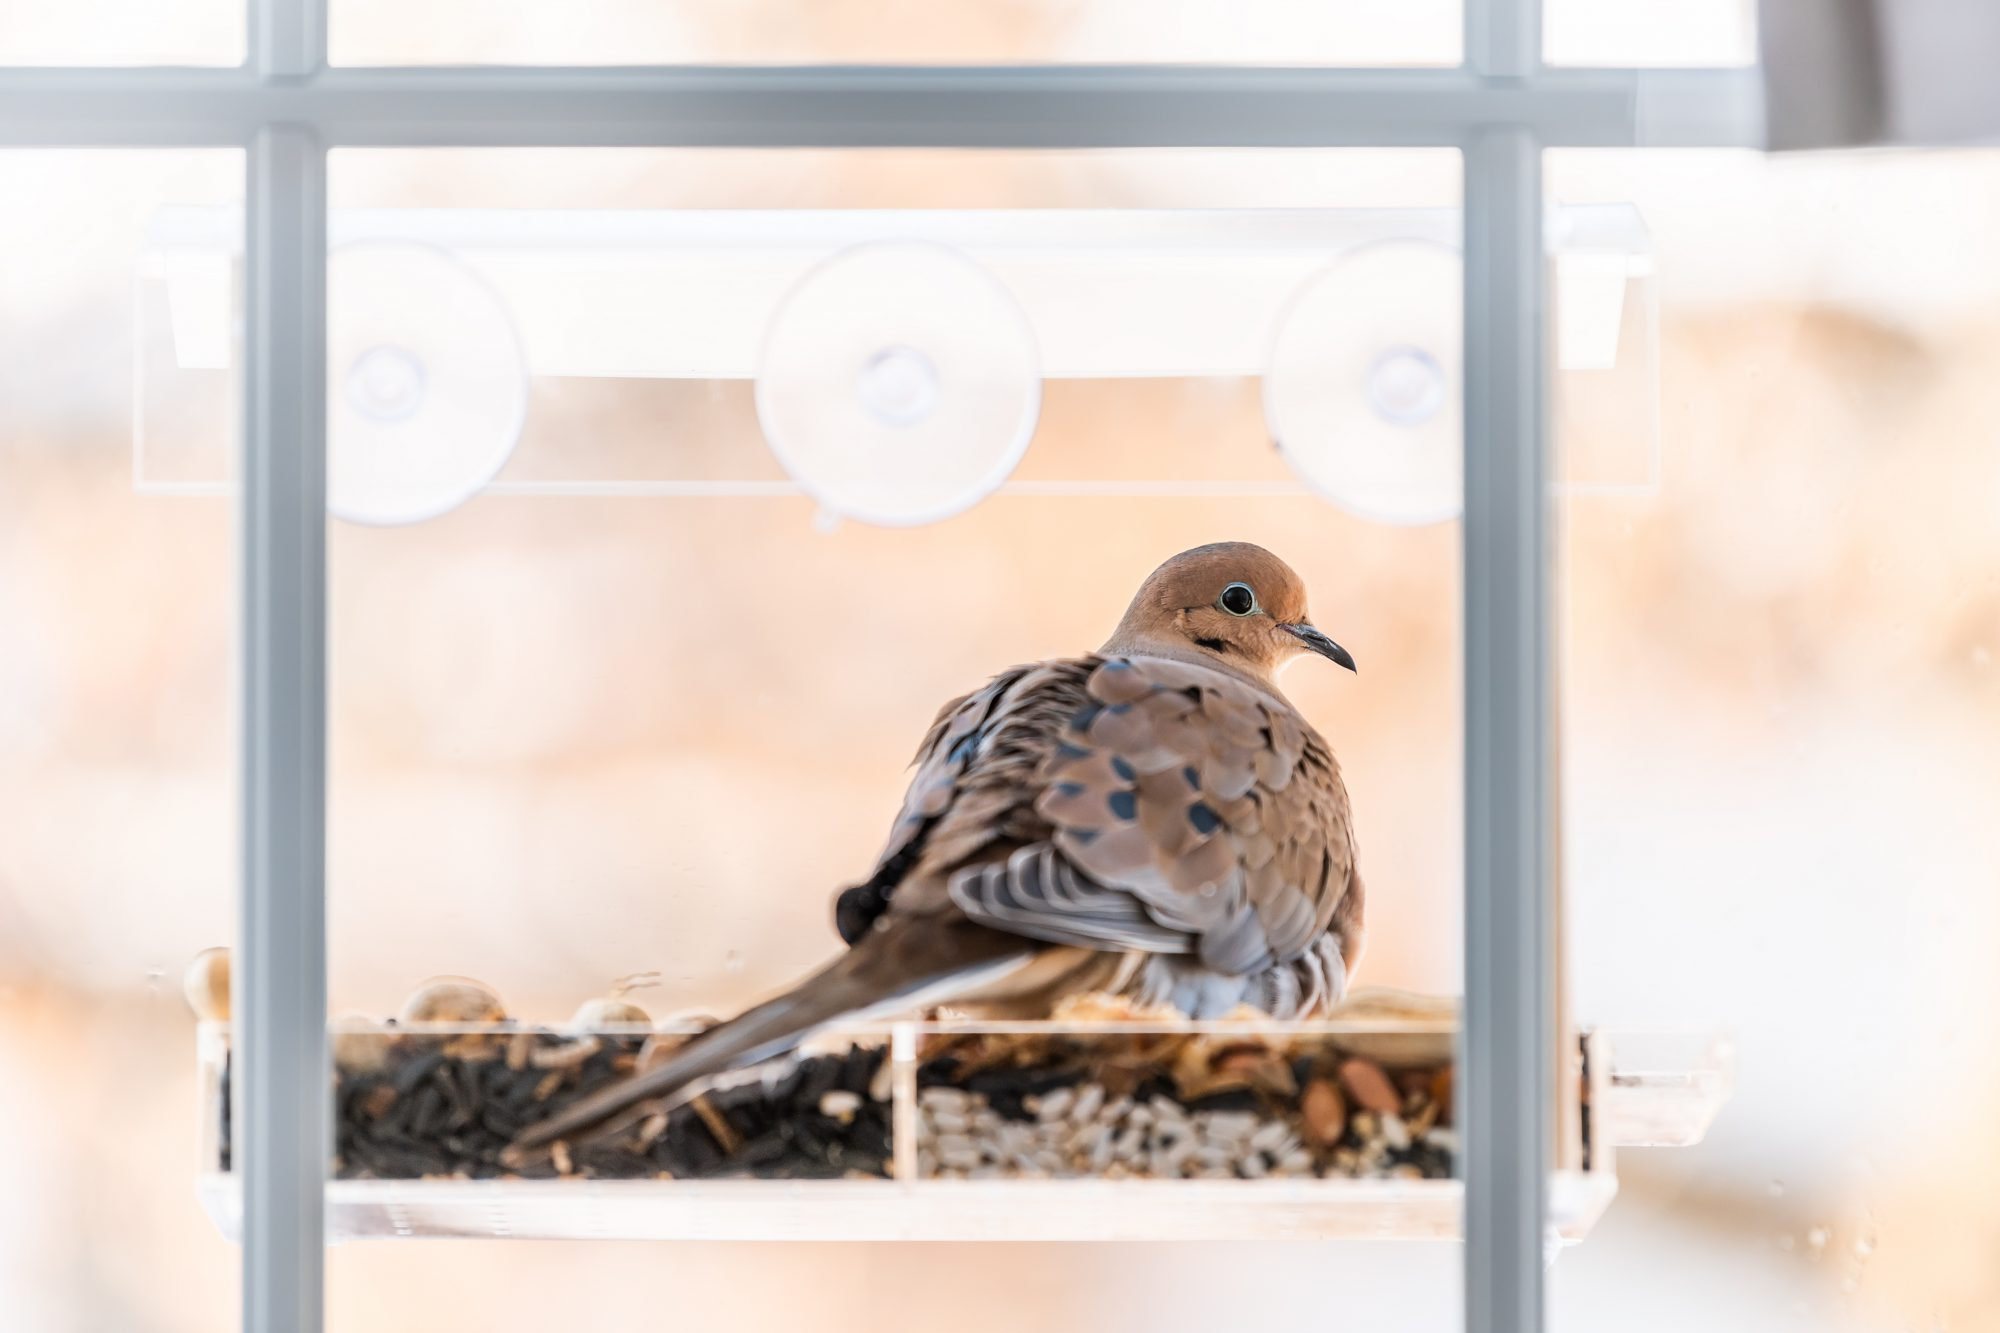 mourning dove bird sitting perched on a glass window feeder